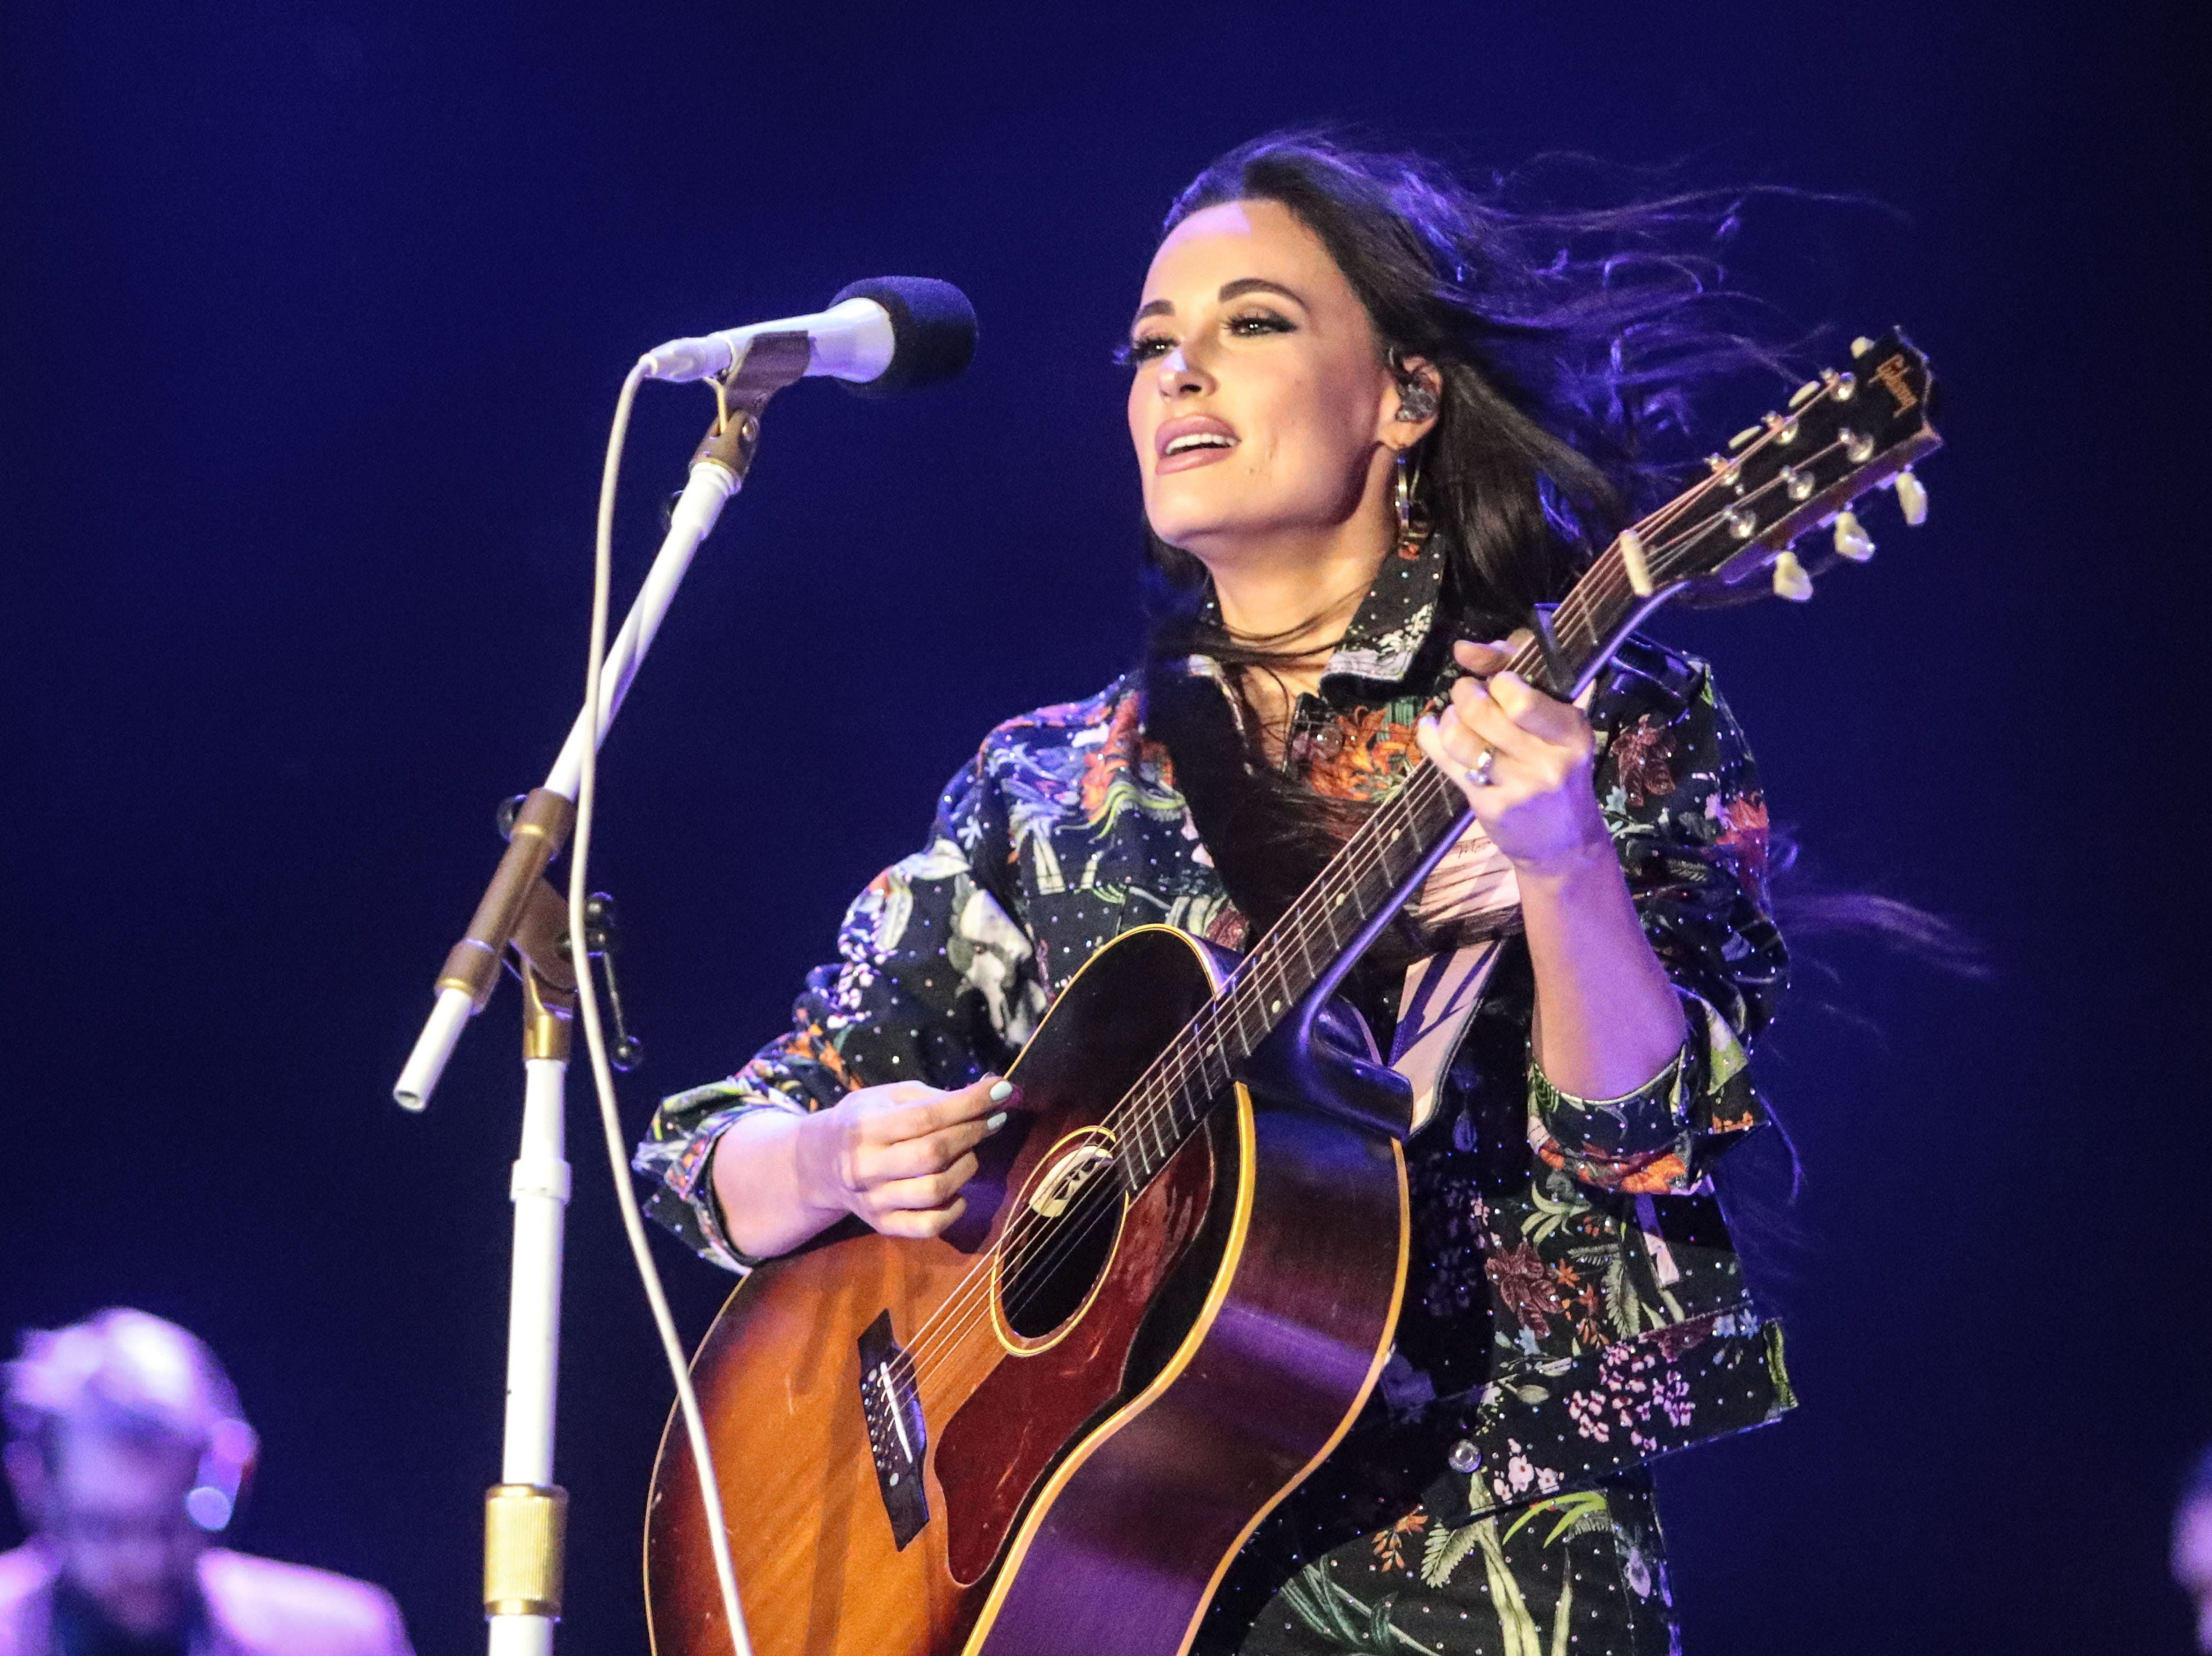 Apr 28: Kacey Musgraves performs during the Stagecoach Country Music Festival.